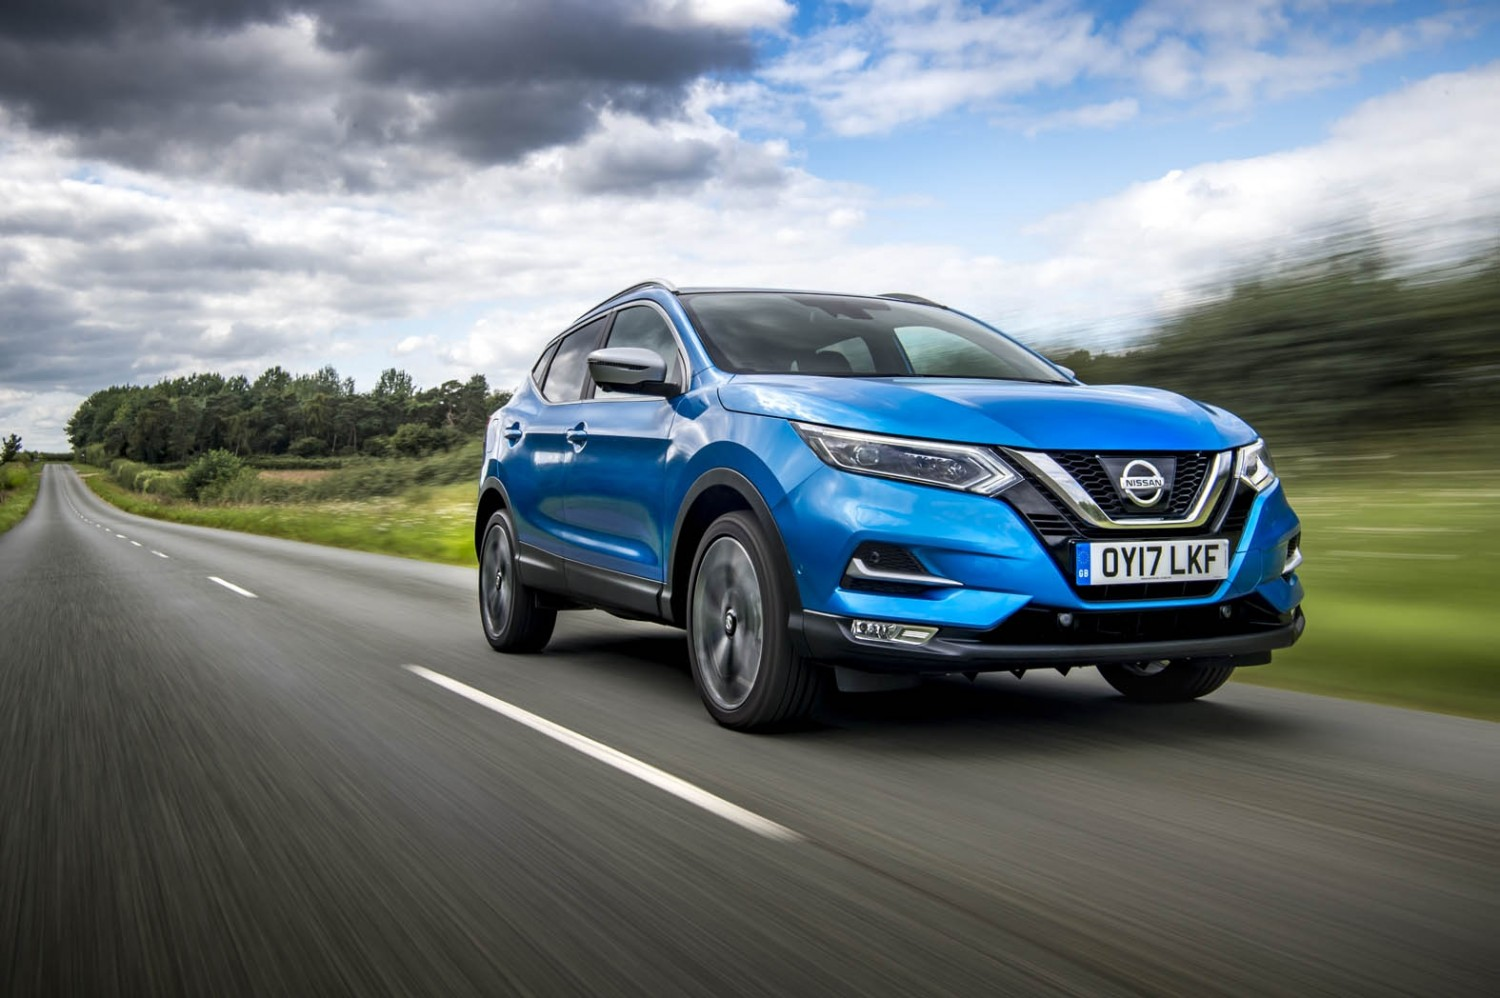 nissan qashqai used car review eurekar. Black Bedroom Furniture Sets. Home Design Ideas